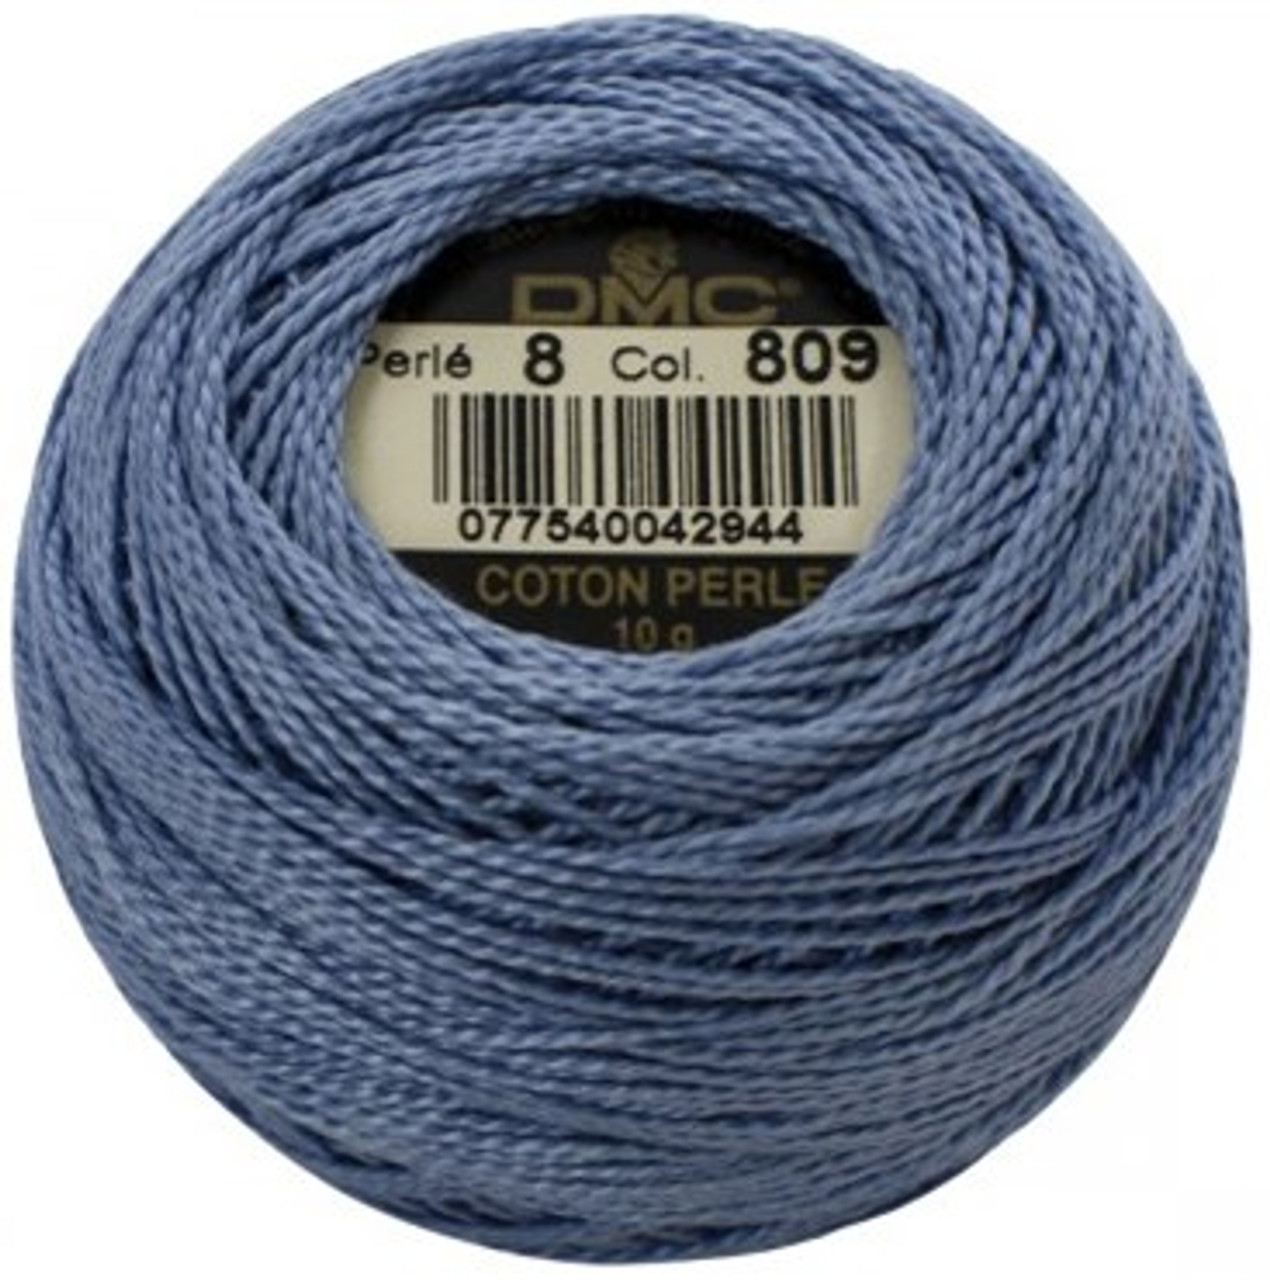 DMC 809  Delft Blue Pearl Cotton Thread Ball - Size 8